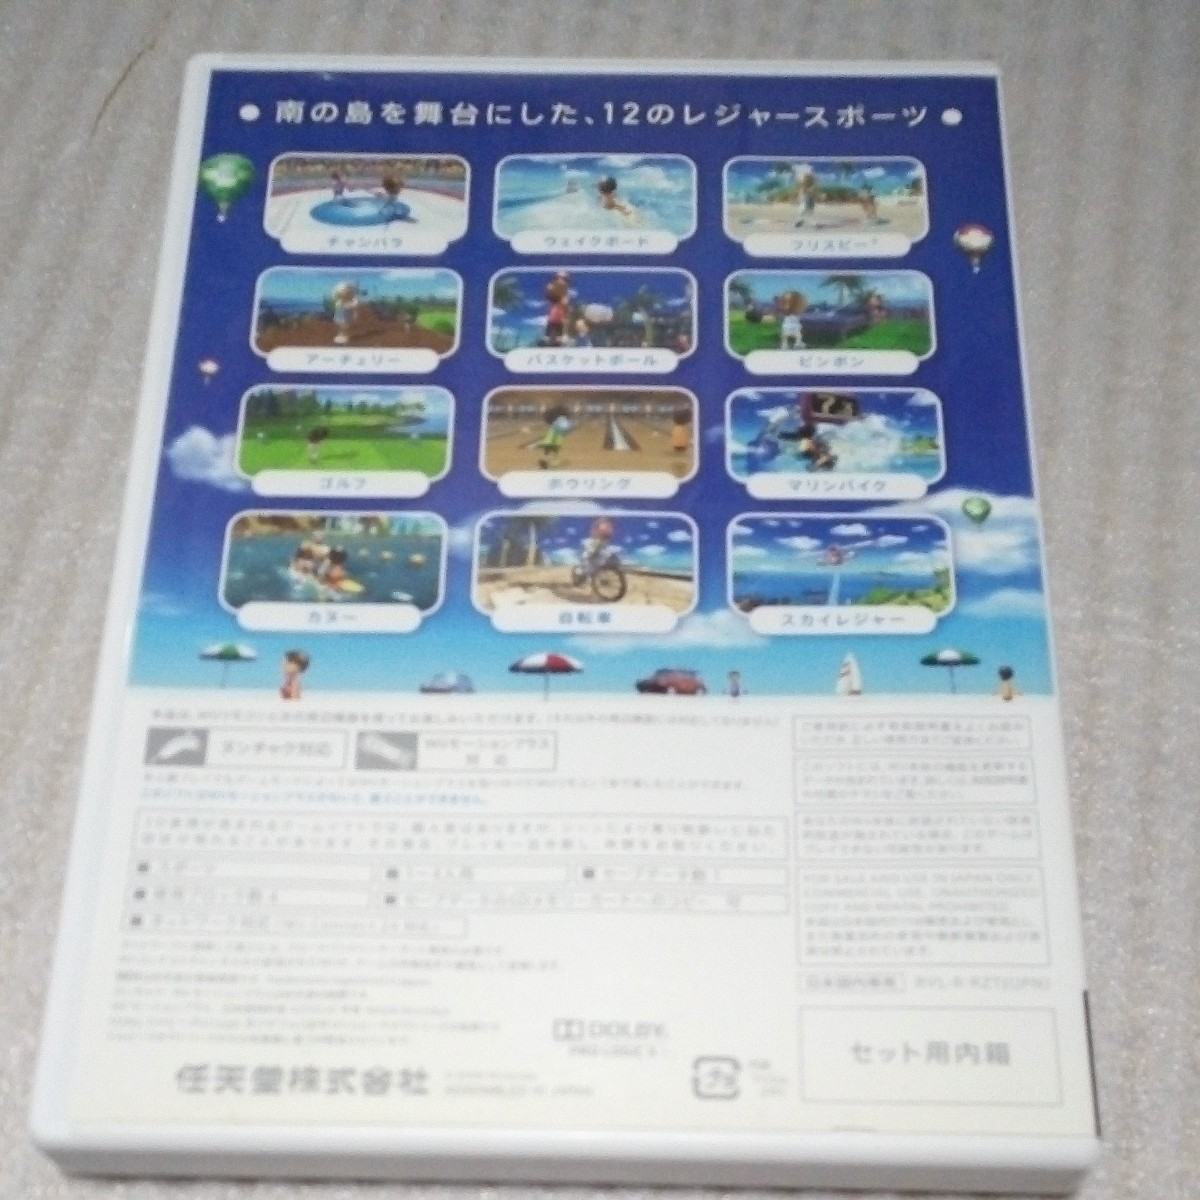 Wiiリモコンプラス ヌンチャク Wiiソフト Wiiスポーツリゾート